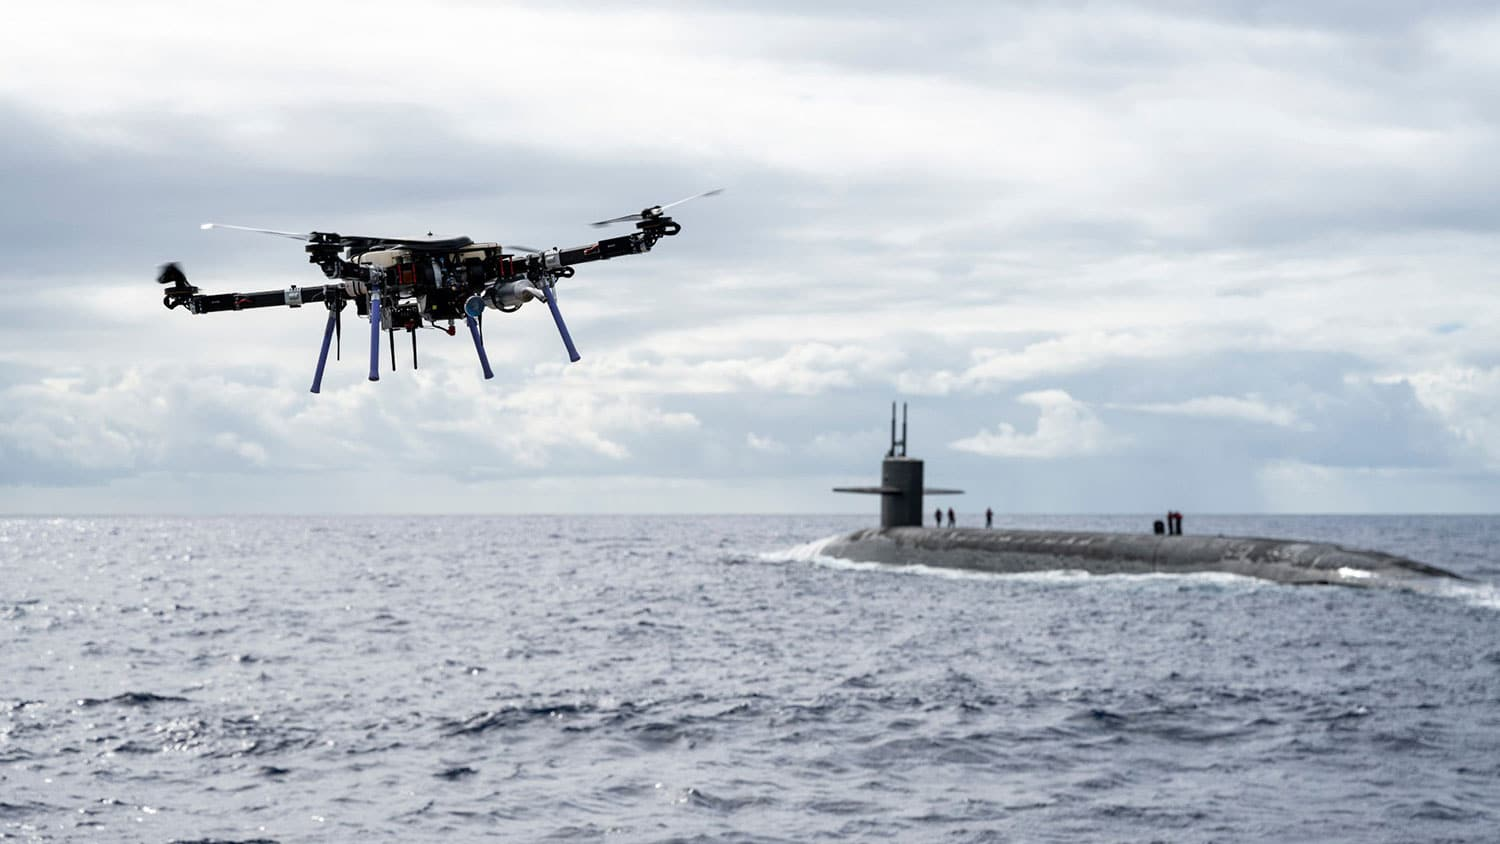 The U.S. Navy used drones to deliver cargo to ballistic-missile submarine